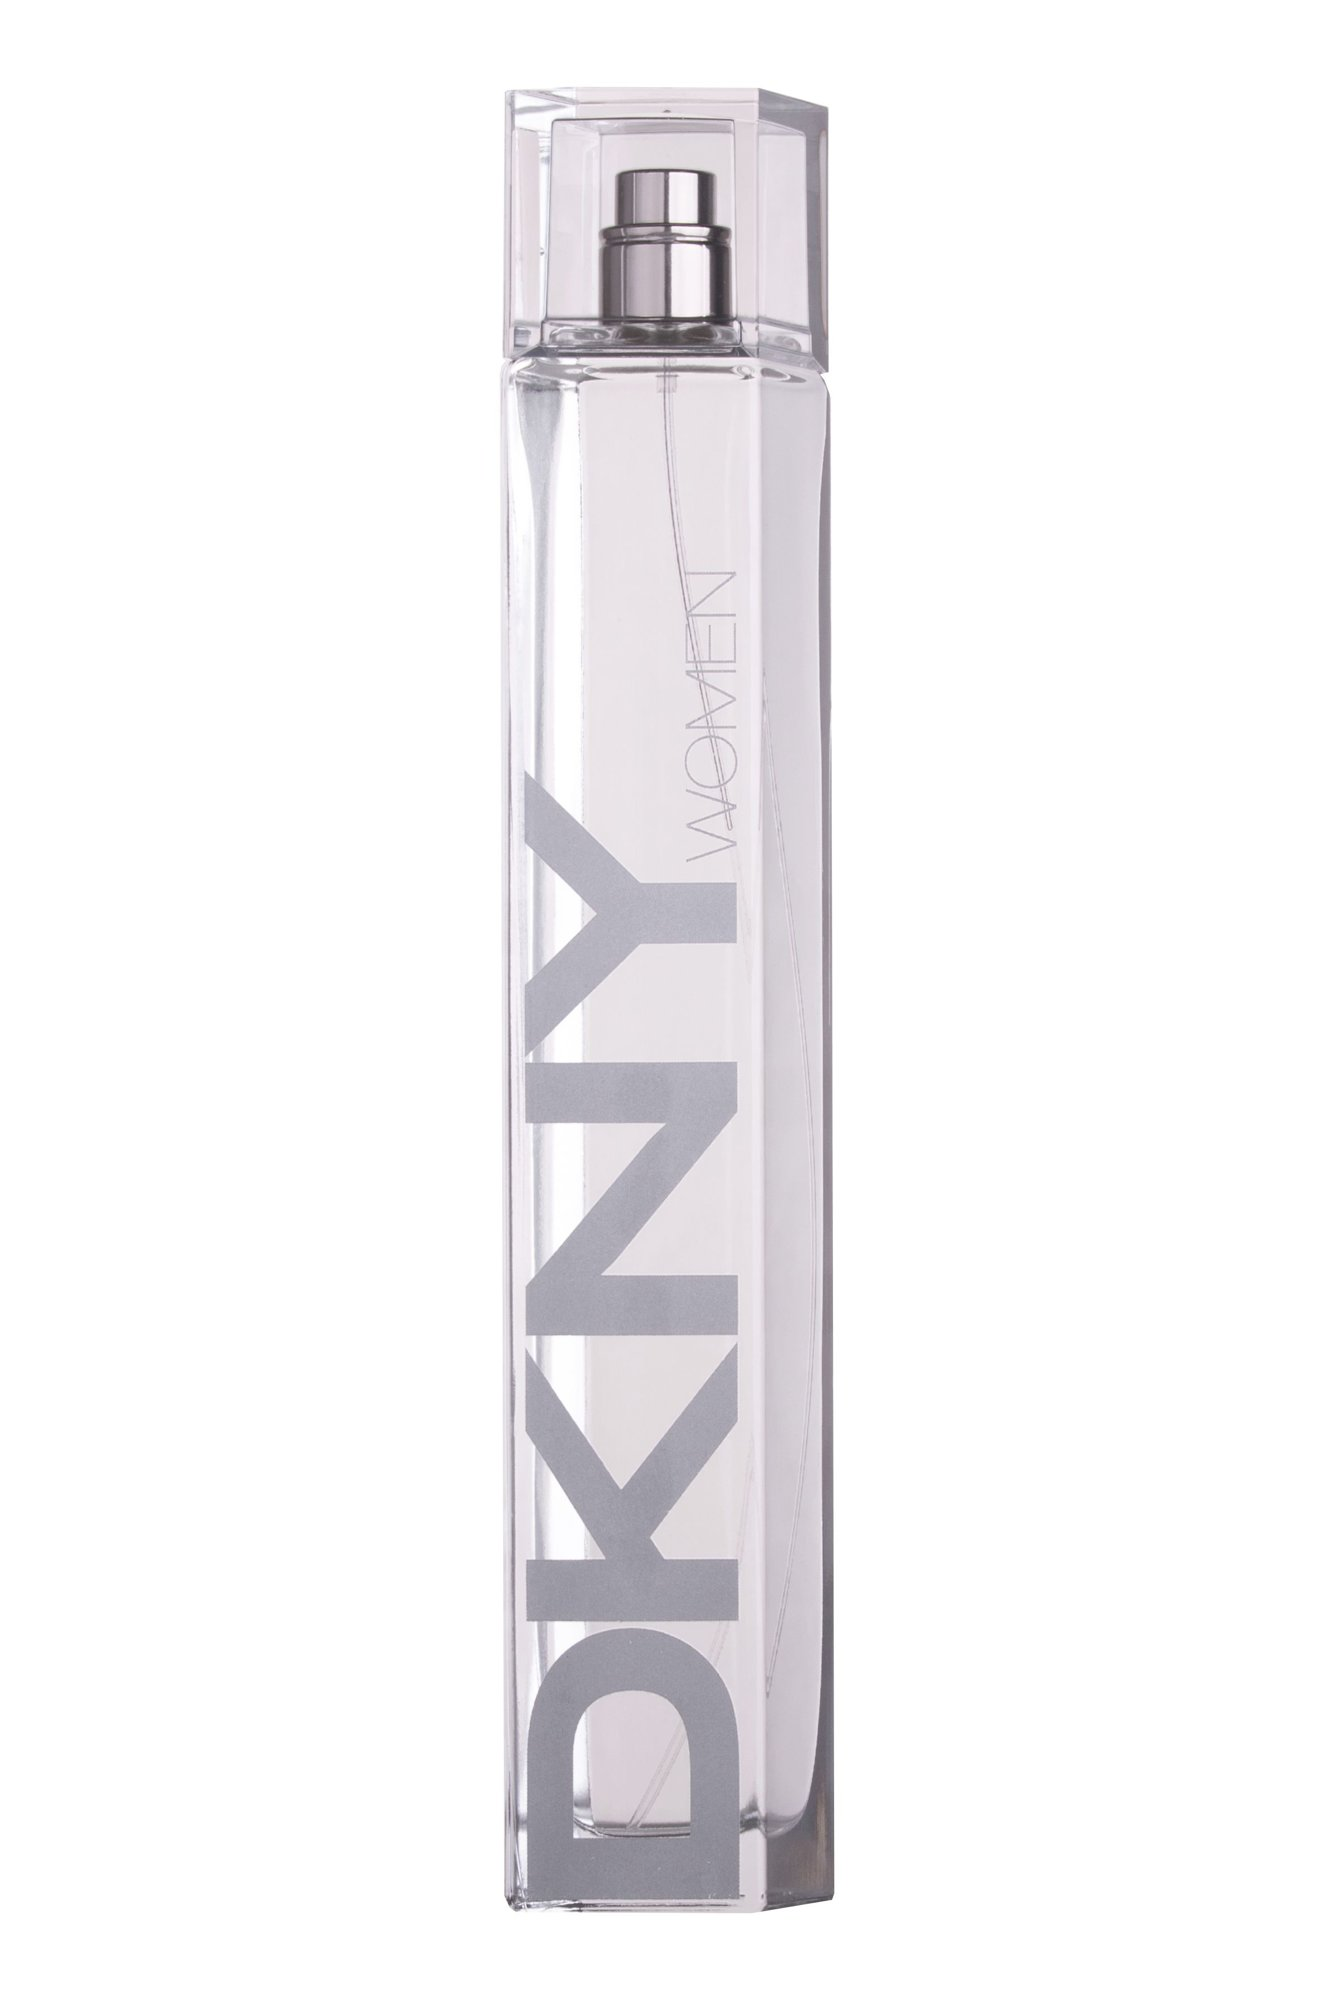 DKNY DKNY Energizing 2011 EDT 100ml